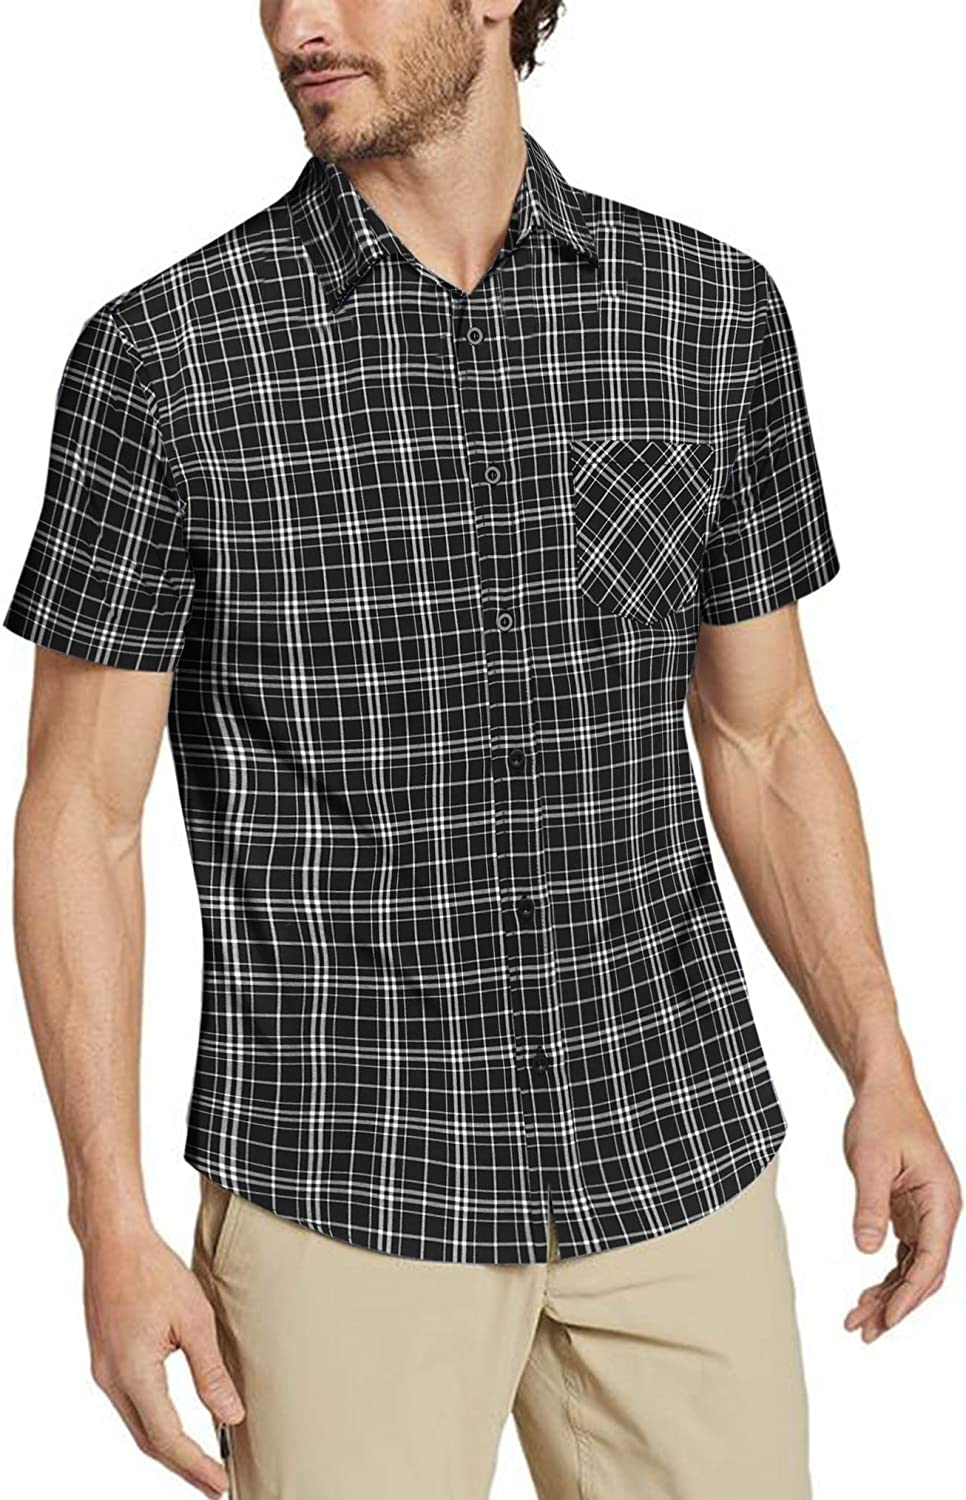 COOFANDY Men's Short Sleeve Plaid Dress Shirt Classic Fit Wrinkle-Free Casual Button Down Checked Shirts with Pocket